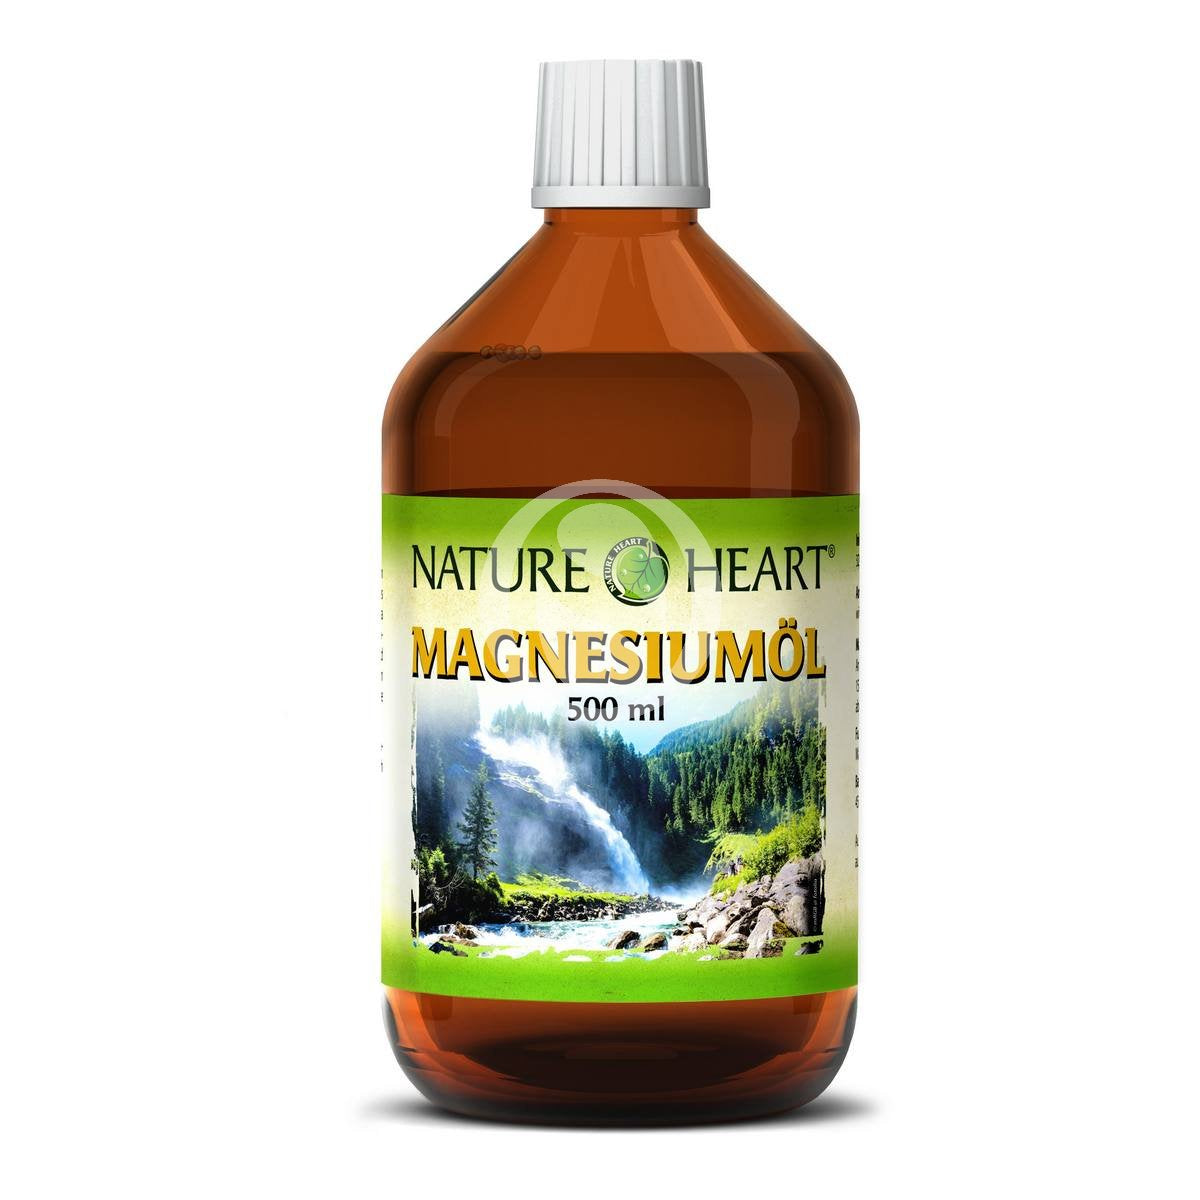 Produktbild Nature Heart MAGNESIUMÖL 500ml